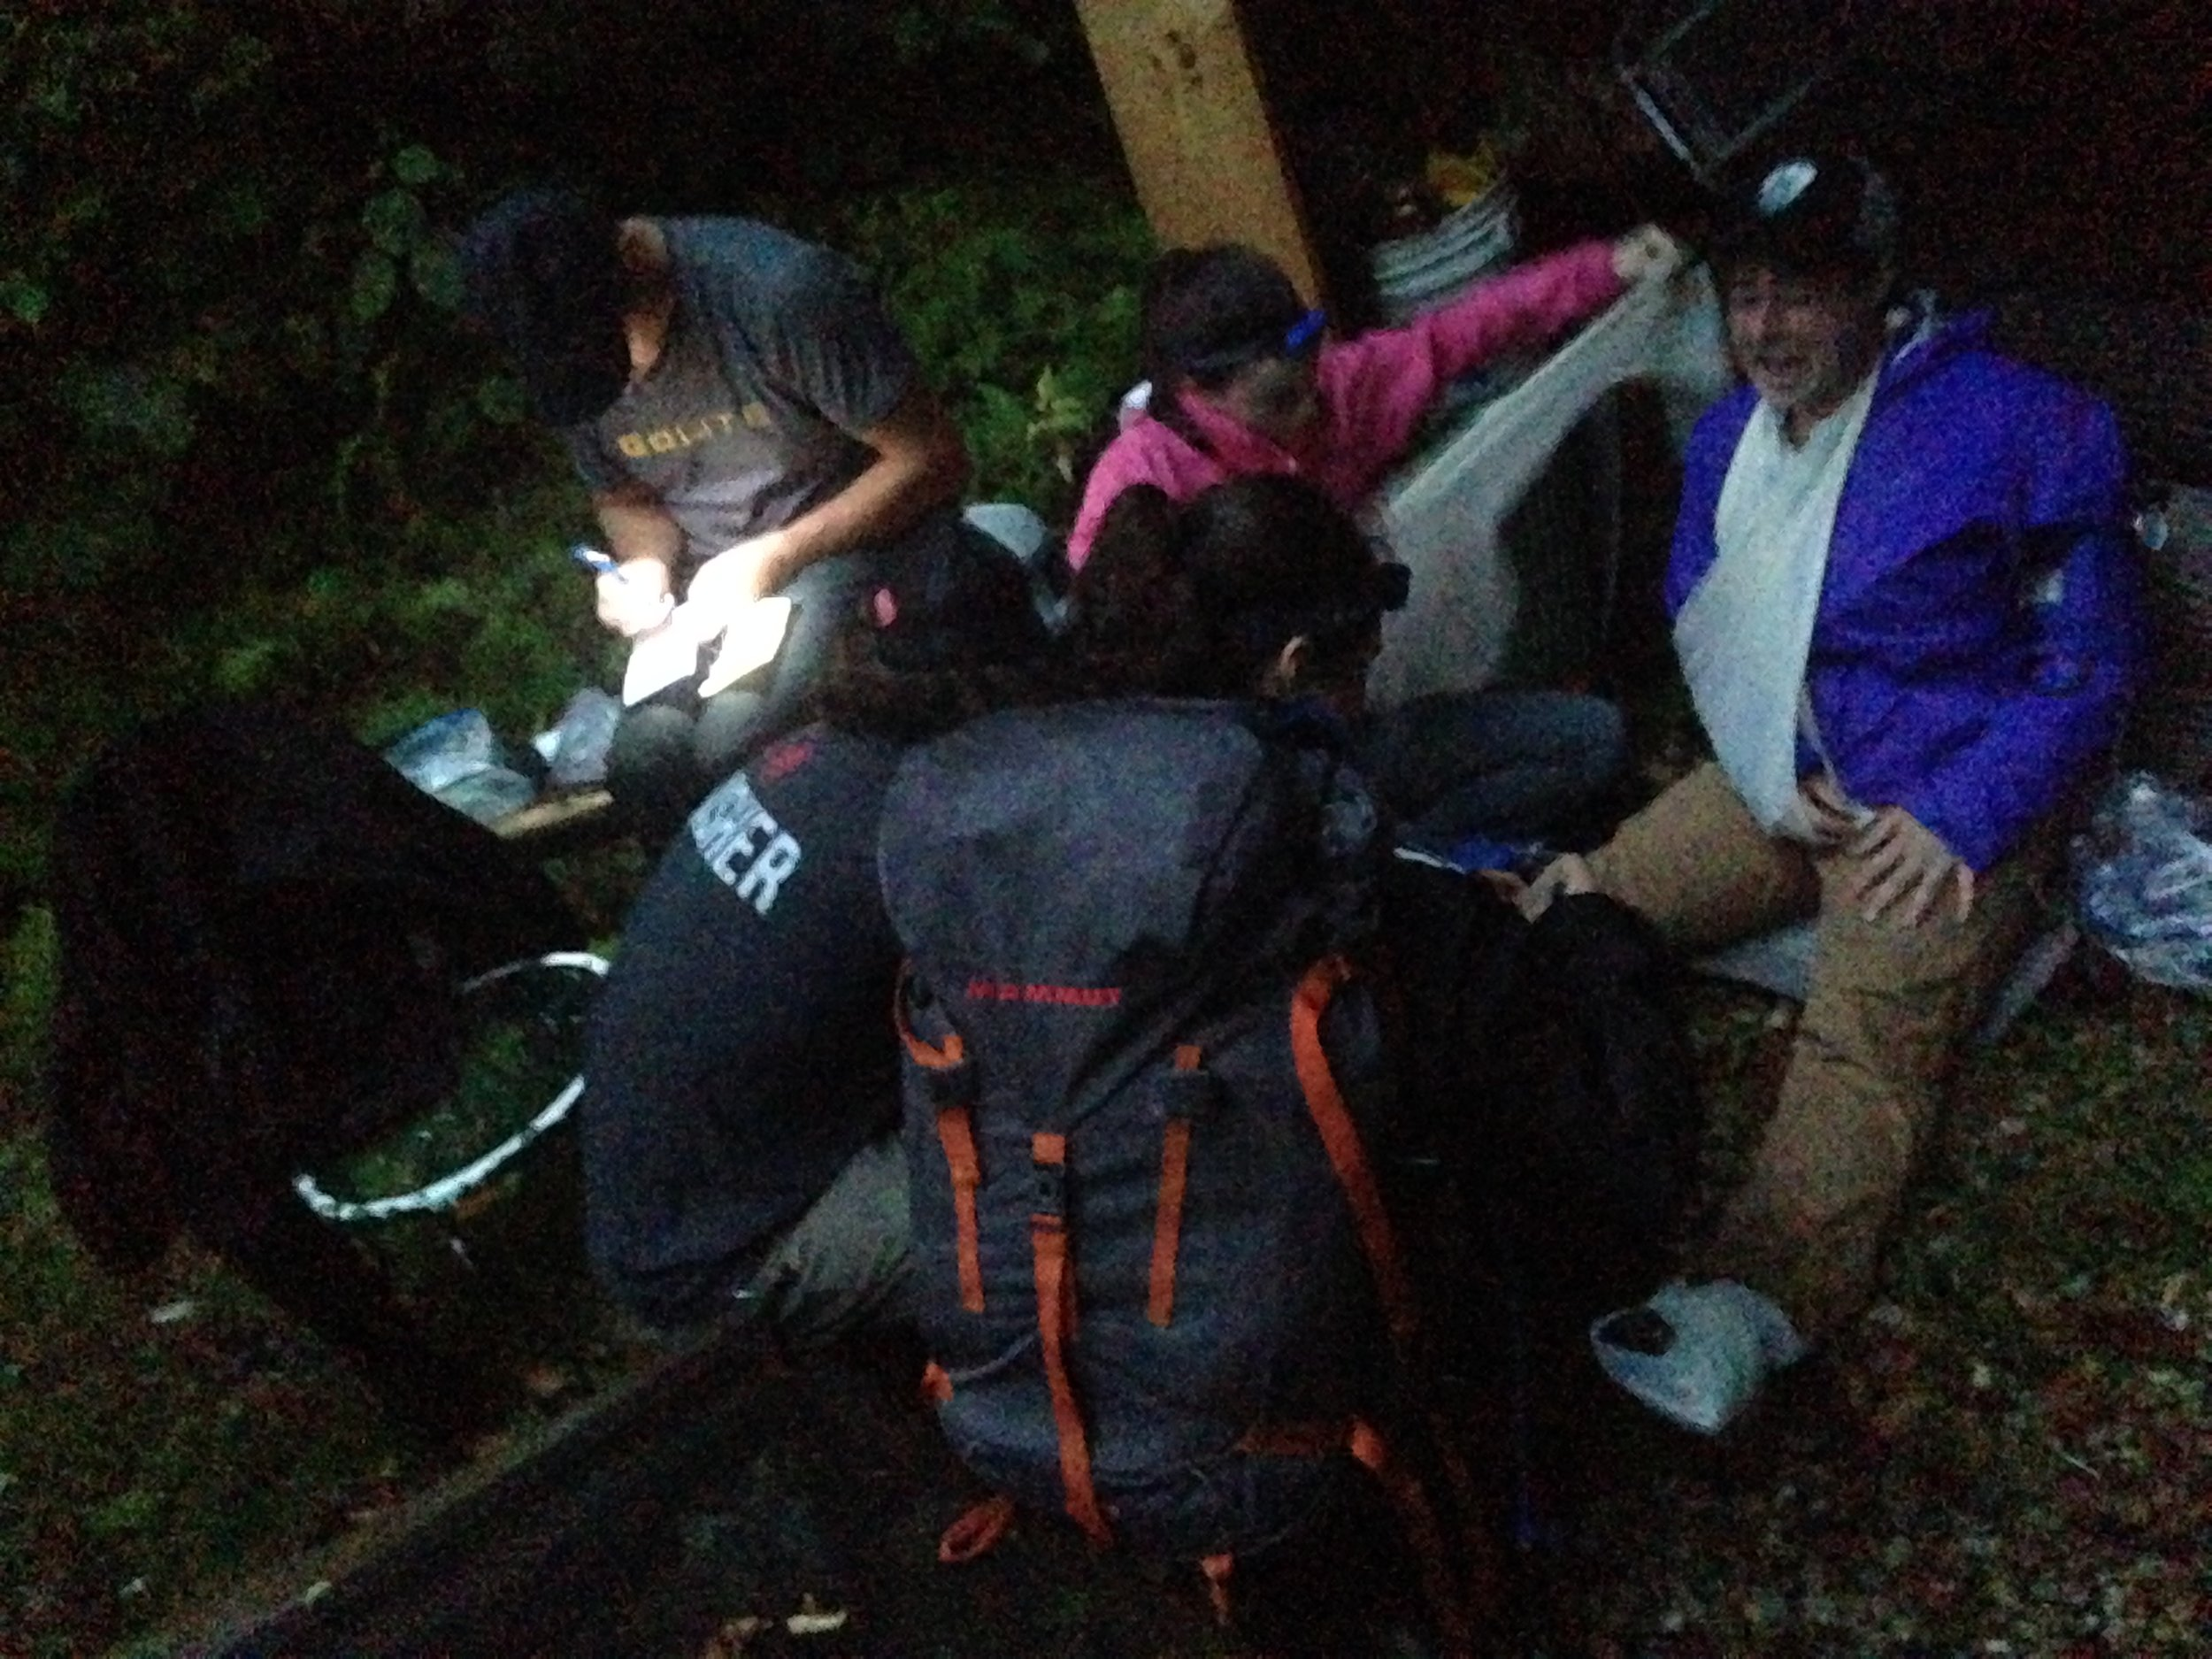 A college wilderness evacuation team trains at KMG HQ at night.  KMG instructors observe, evaluate, and debrief the Evac teams response in scenario based training.